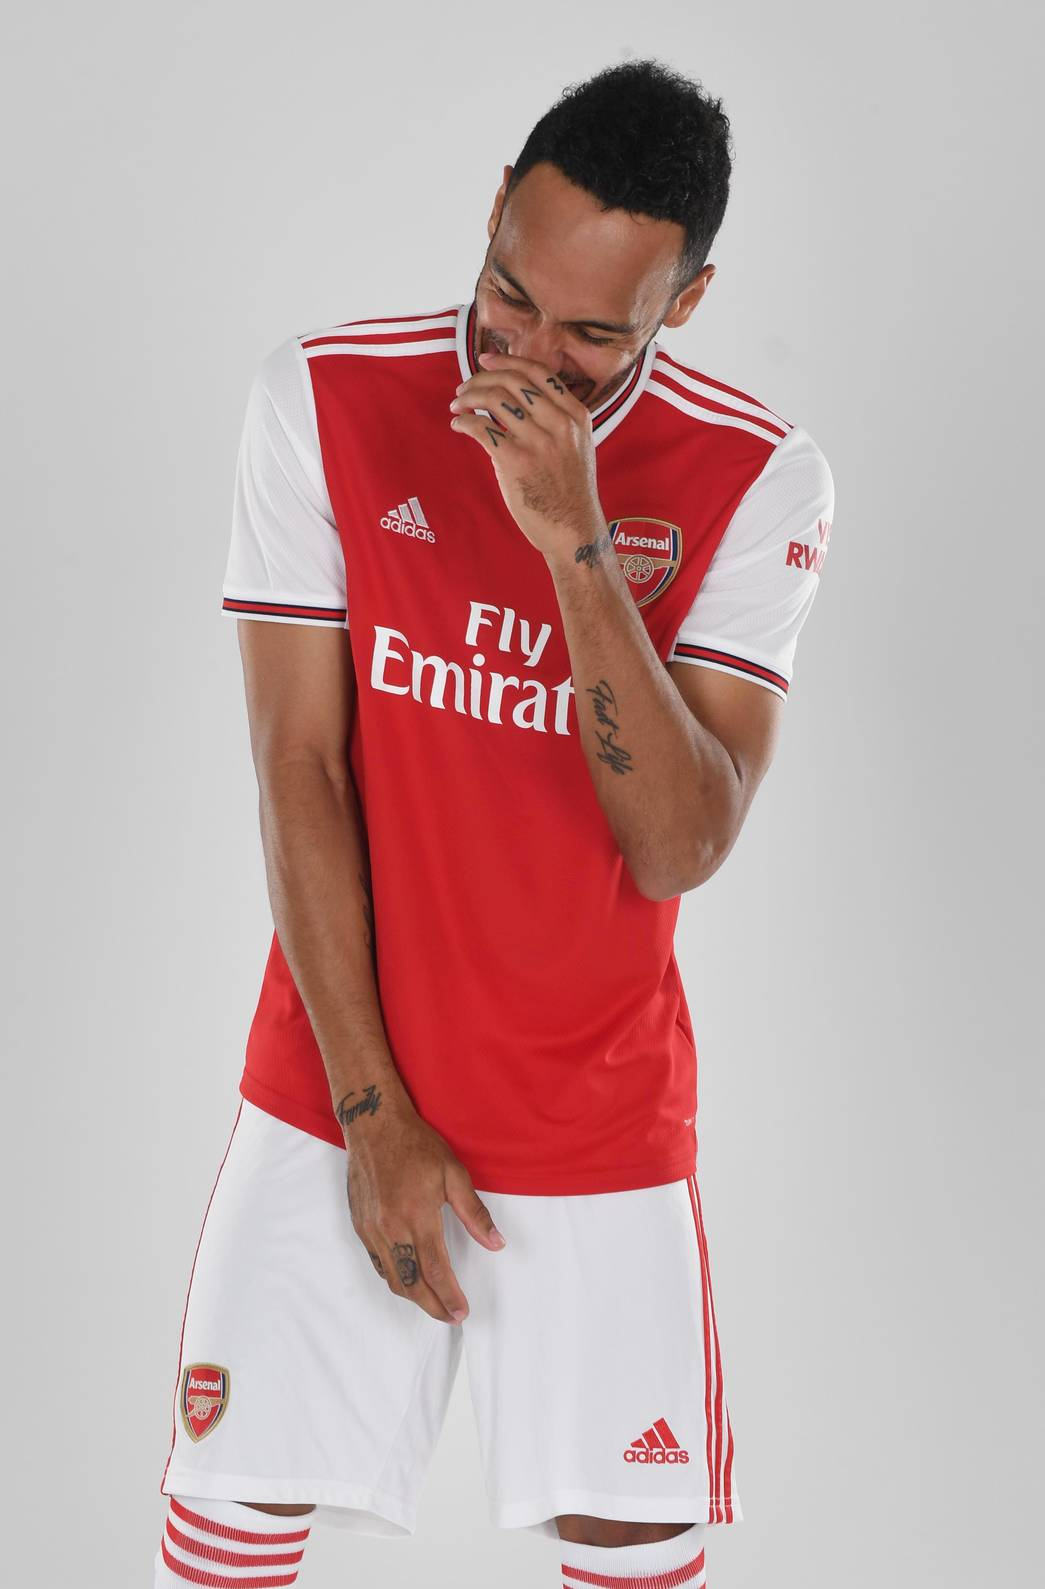 Pictures First Team Squad In Adidas Kit Gallery News Arsenal Com